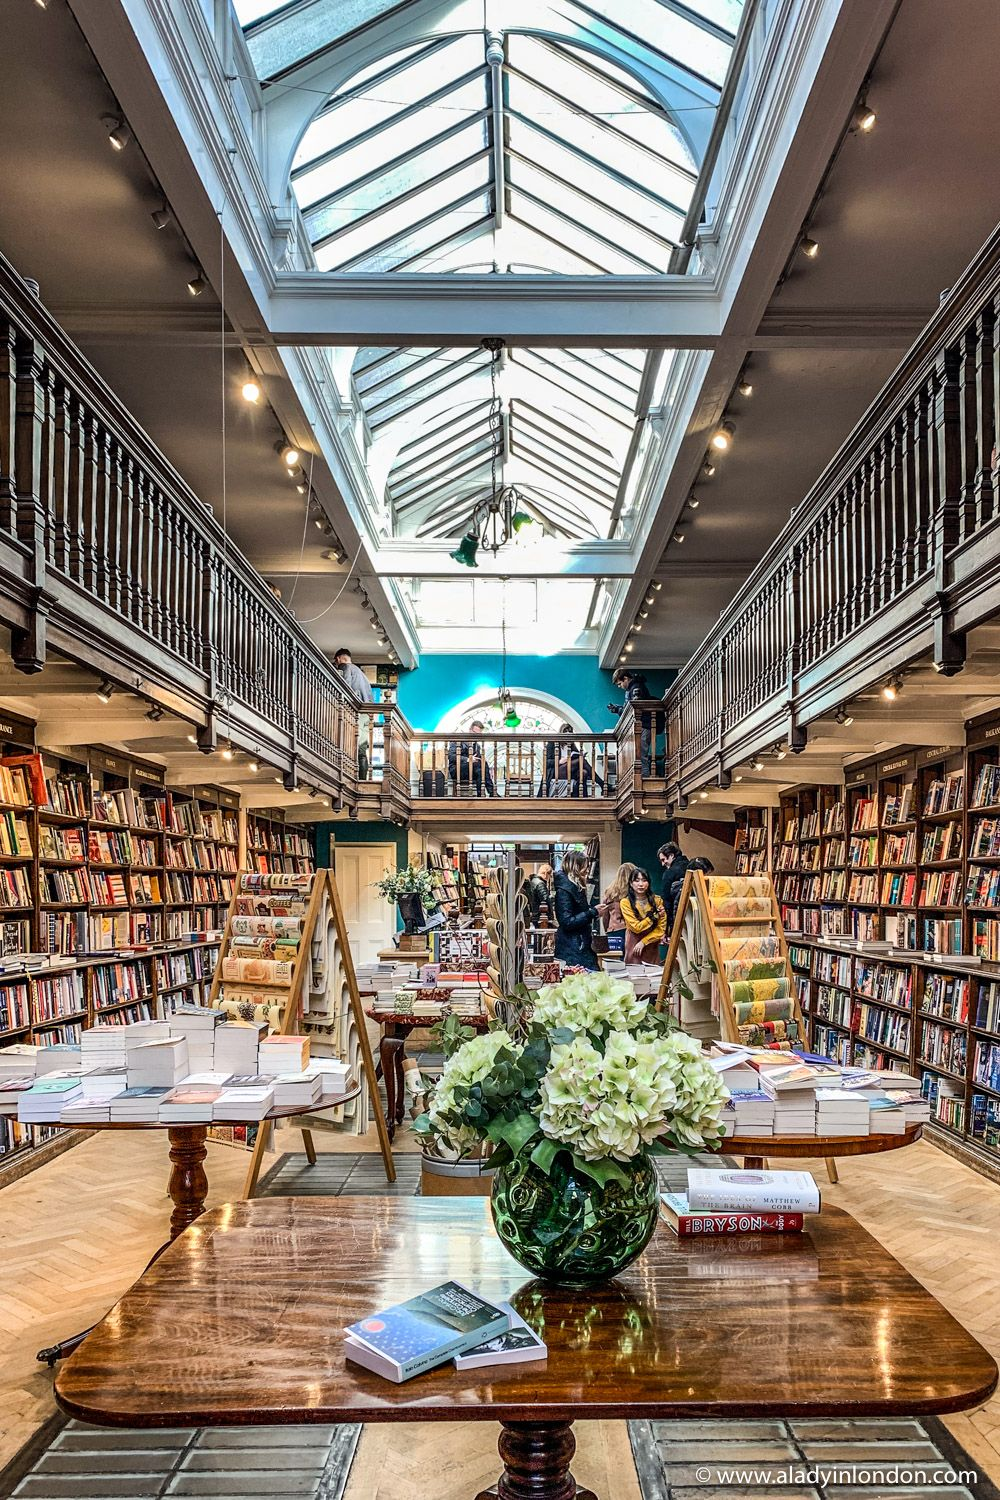 Daunt Books in Marylebone is one of the best bookshops in London. This old bookshop in London has great bookstore design and historic bookshop aesthetic in its interior. Daunt Books in London is a great place for book lovers. #bookshop #bookstore #dauntbooks #marylebone #london #shop #shopinteriors #interior #interiordesign #books